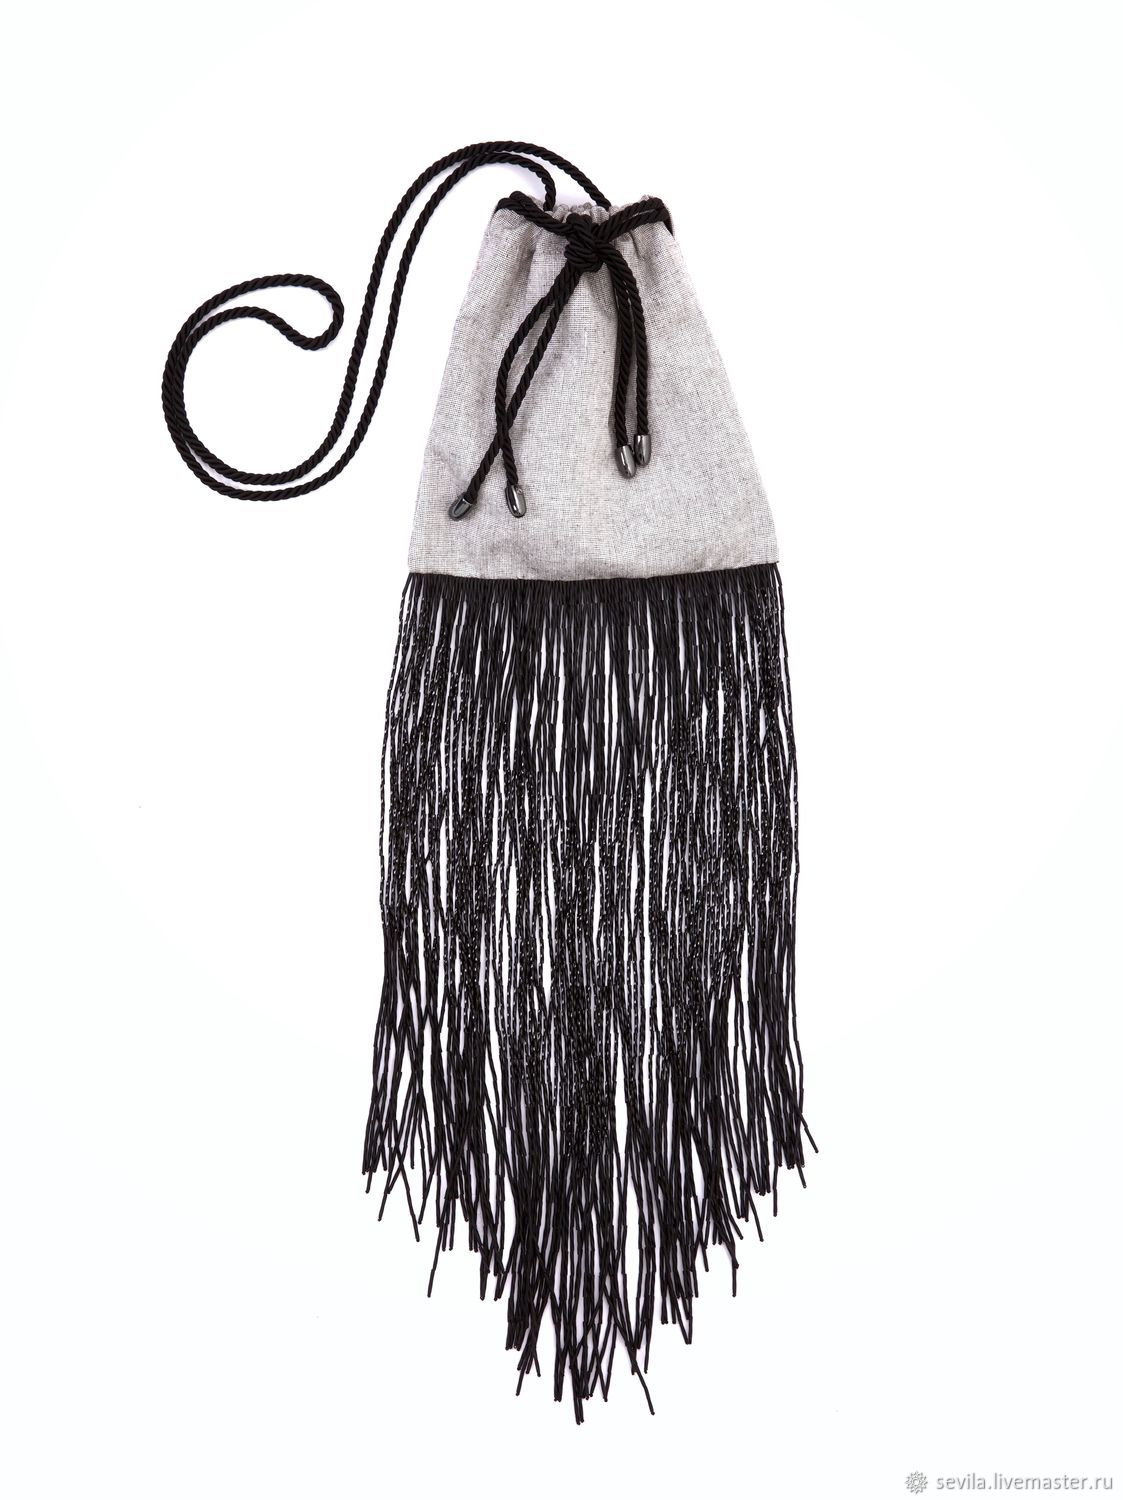 Bag with a fringe of bugles STARLIGHT SIS, Classic Bag, St. Petersburg,  Фото №1